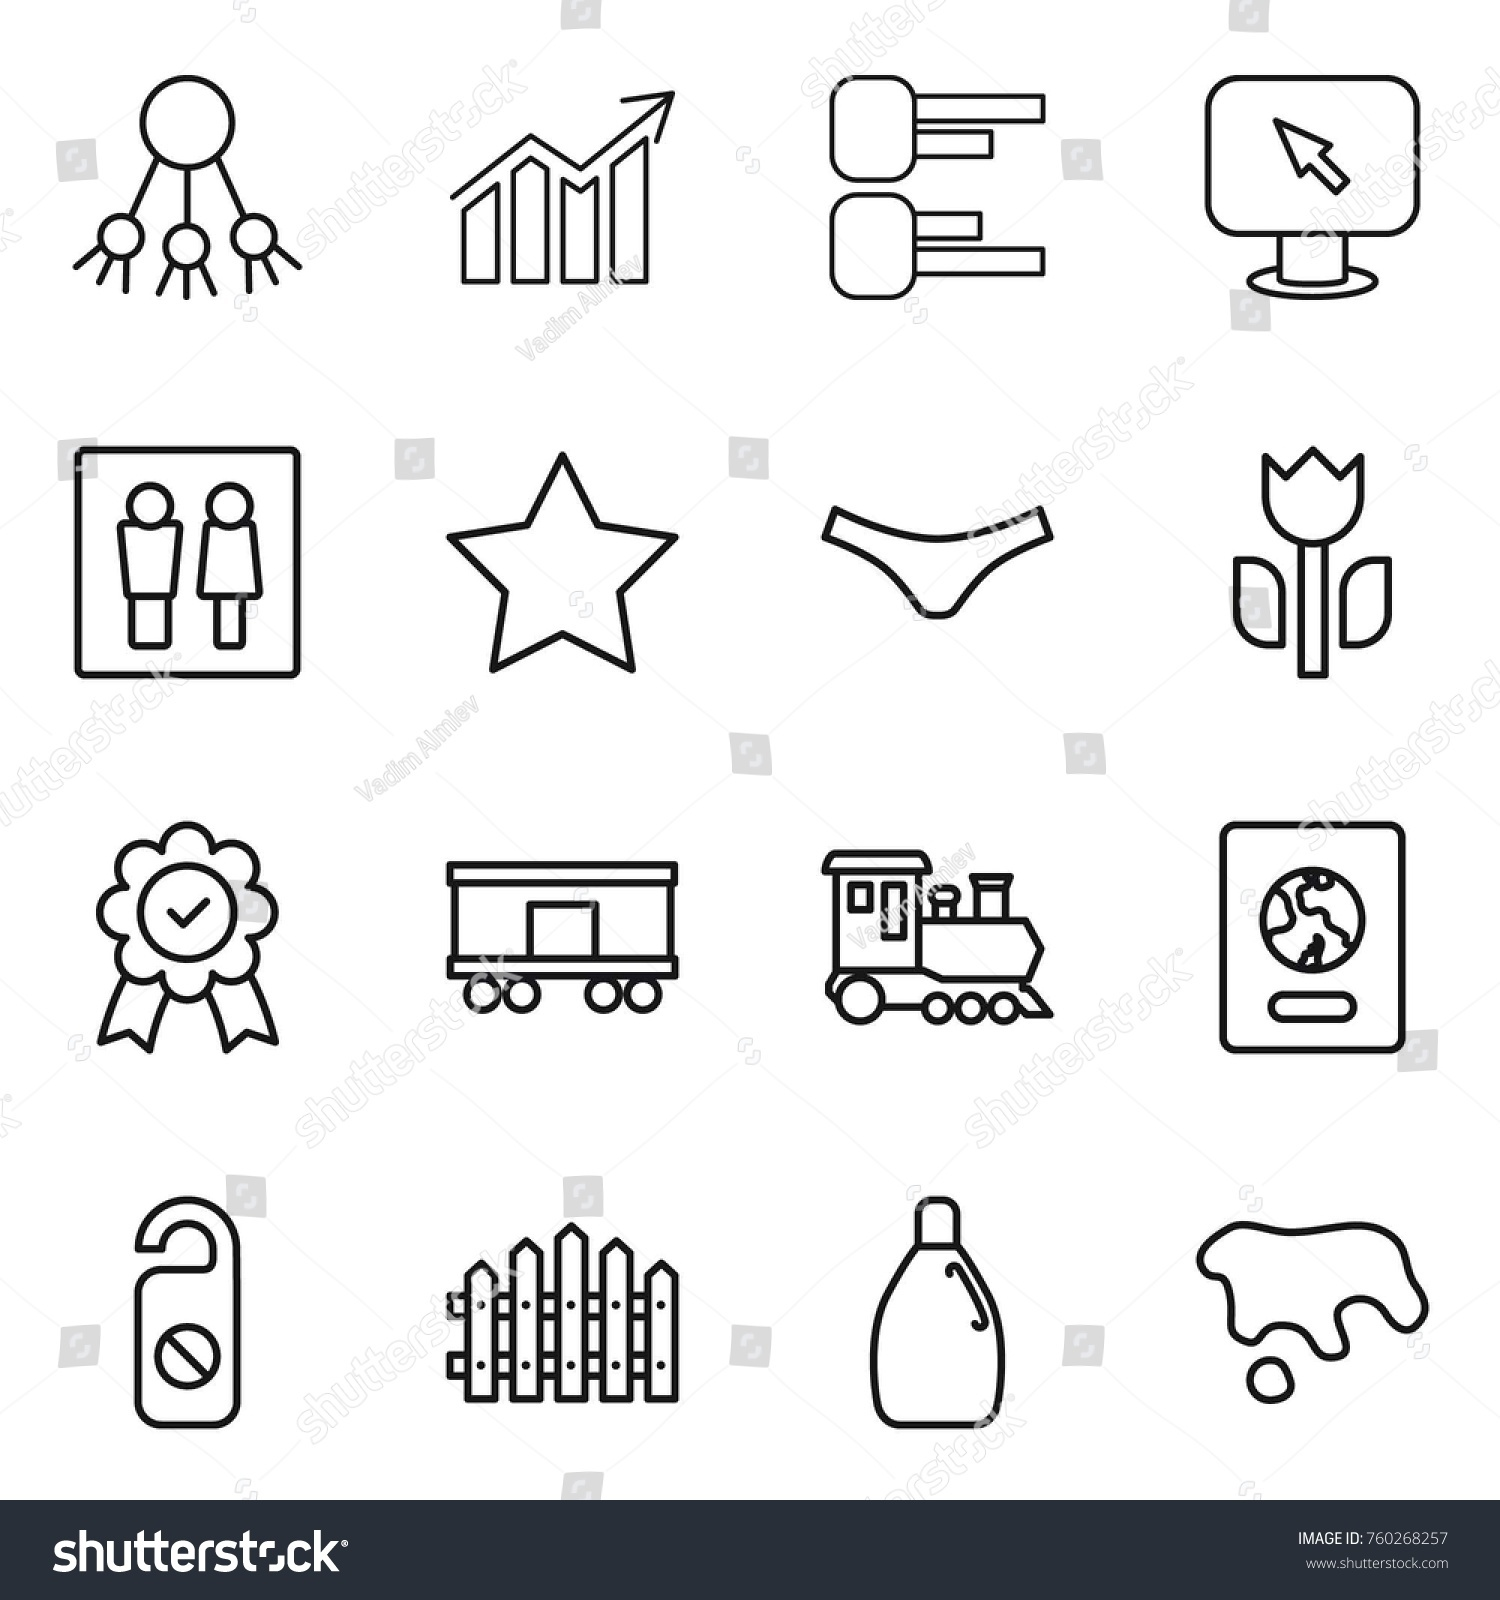 hight resolution of thin line icon set share diagram monitor arrow wc star